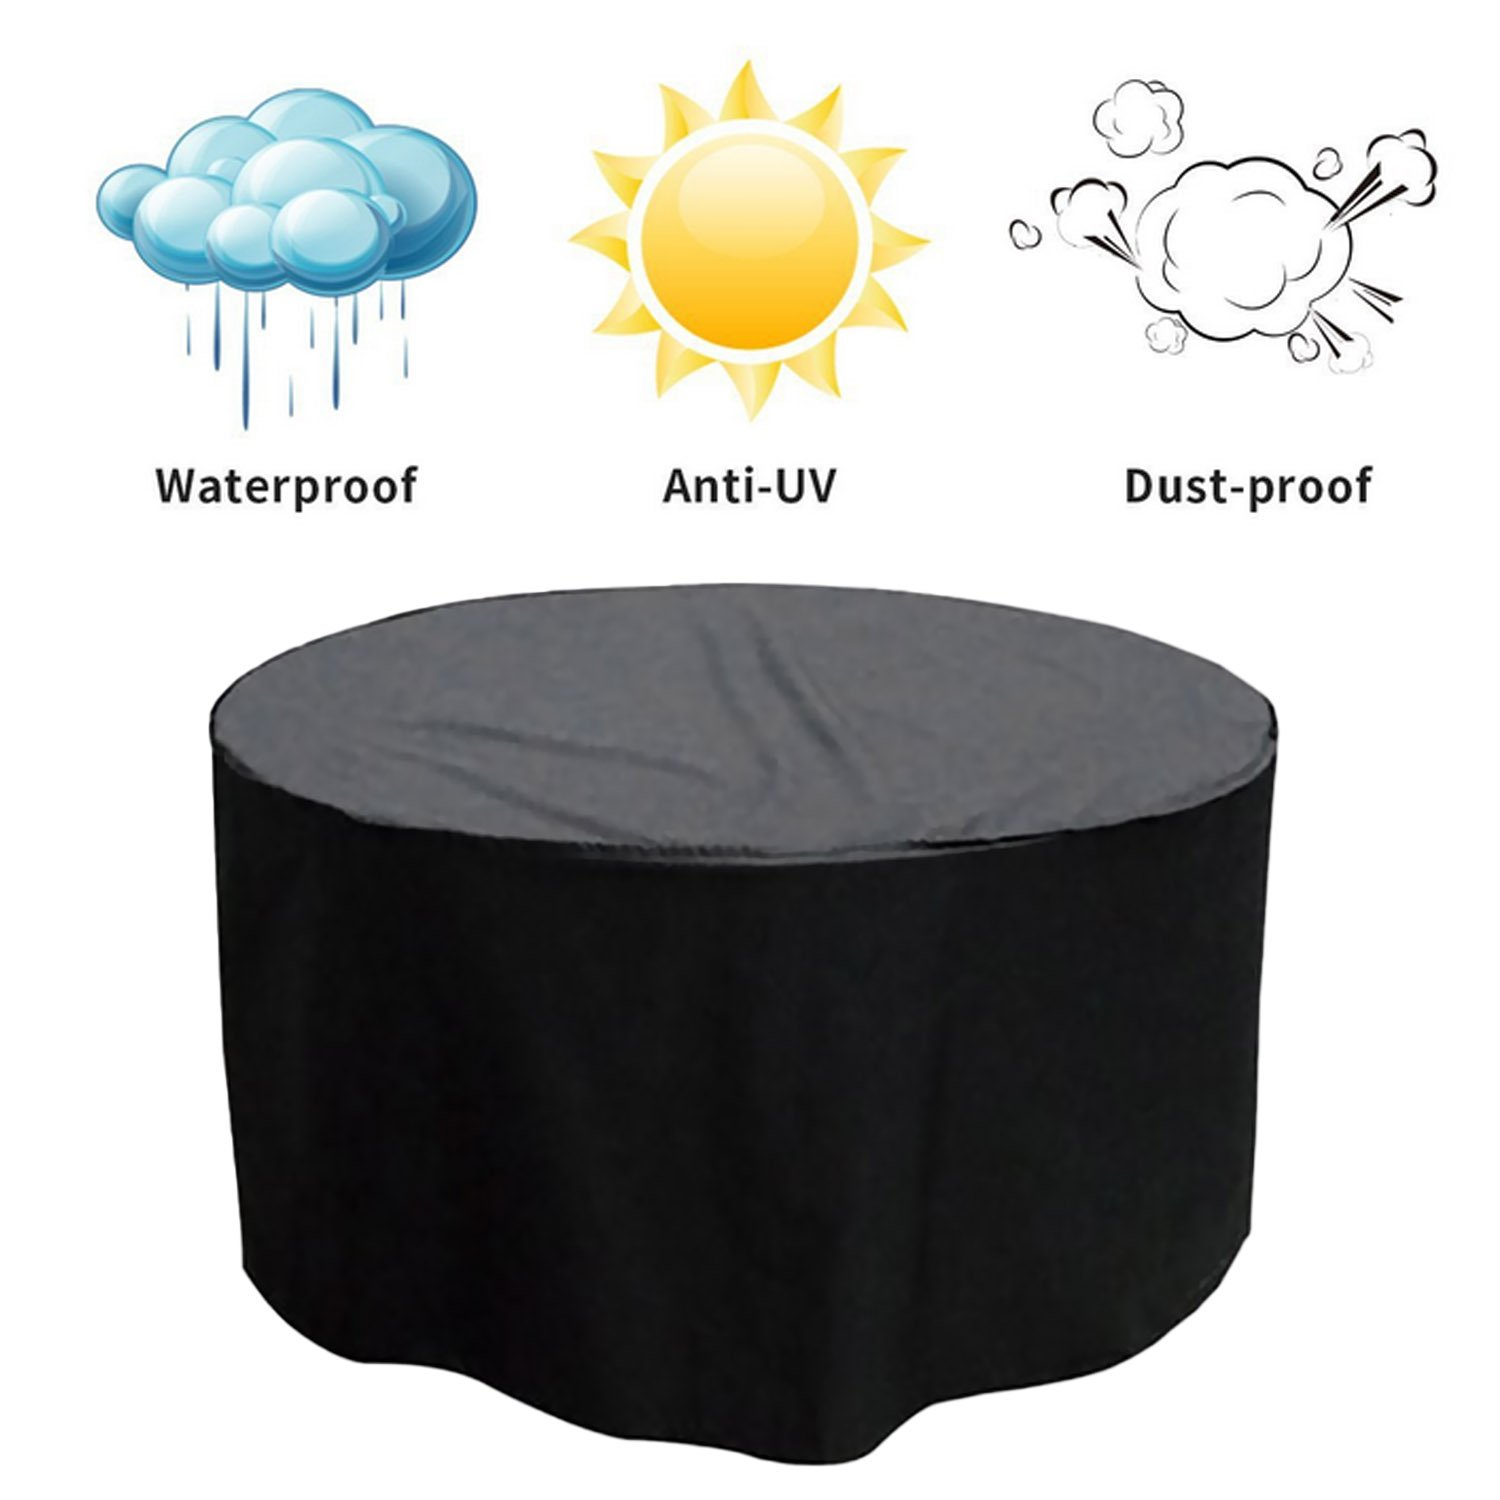 Round Furniture Cover Durable Daily Life Waterproof Dustproof Outdoor Table Chair Patio Set Cover Protector 50.39 x 27.95 Inch